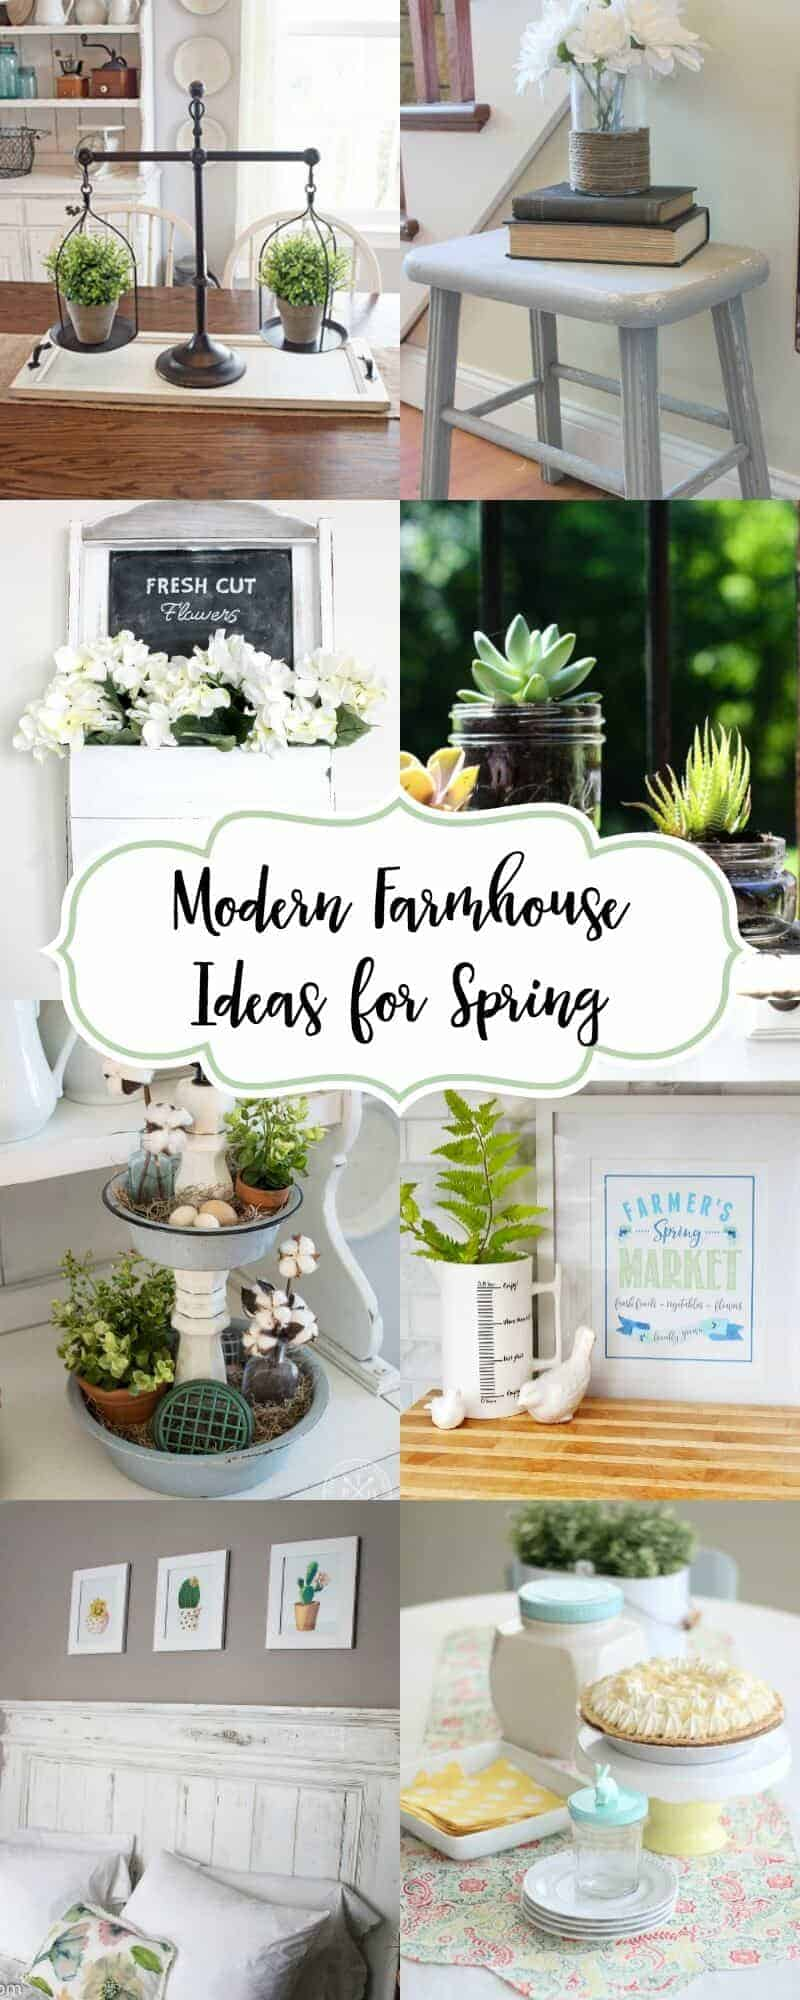 Collage of modern farmhouse decor for spring decorating